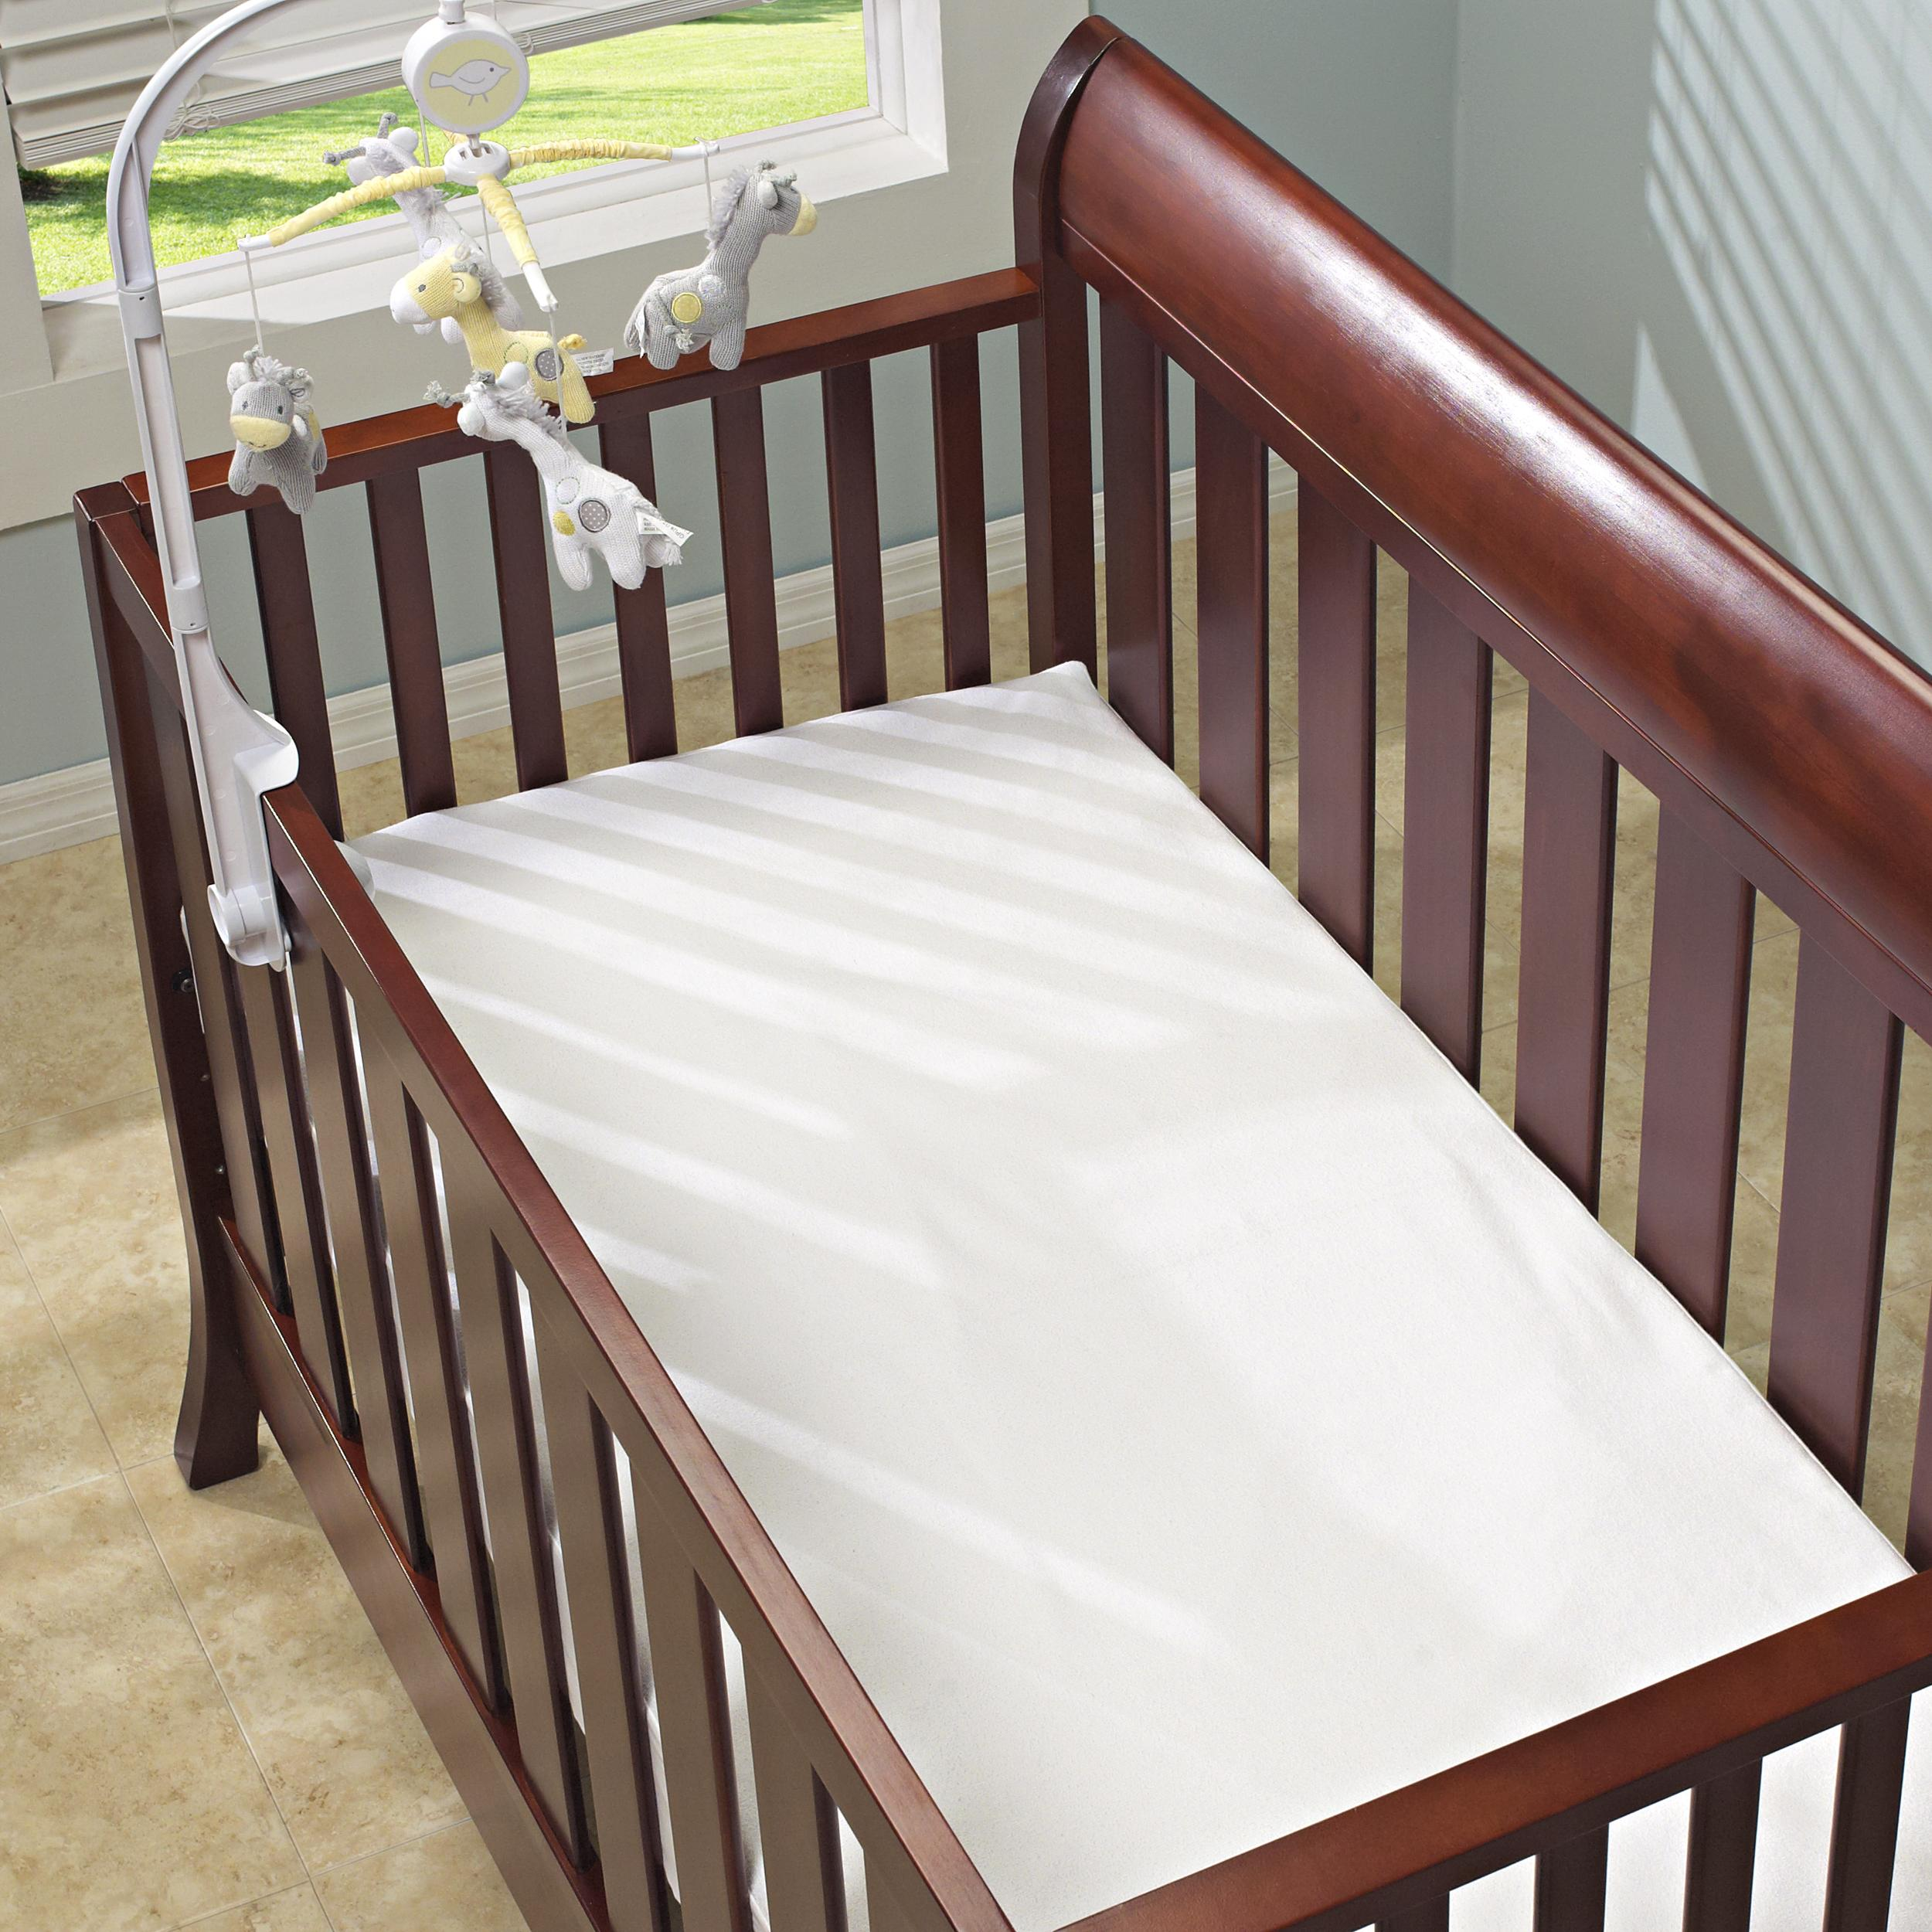 Famous Maker Waterproof Crib Size Mattress Pad